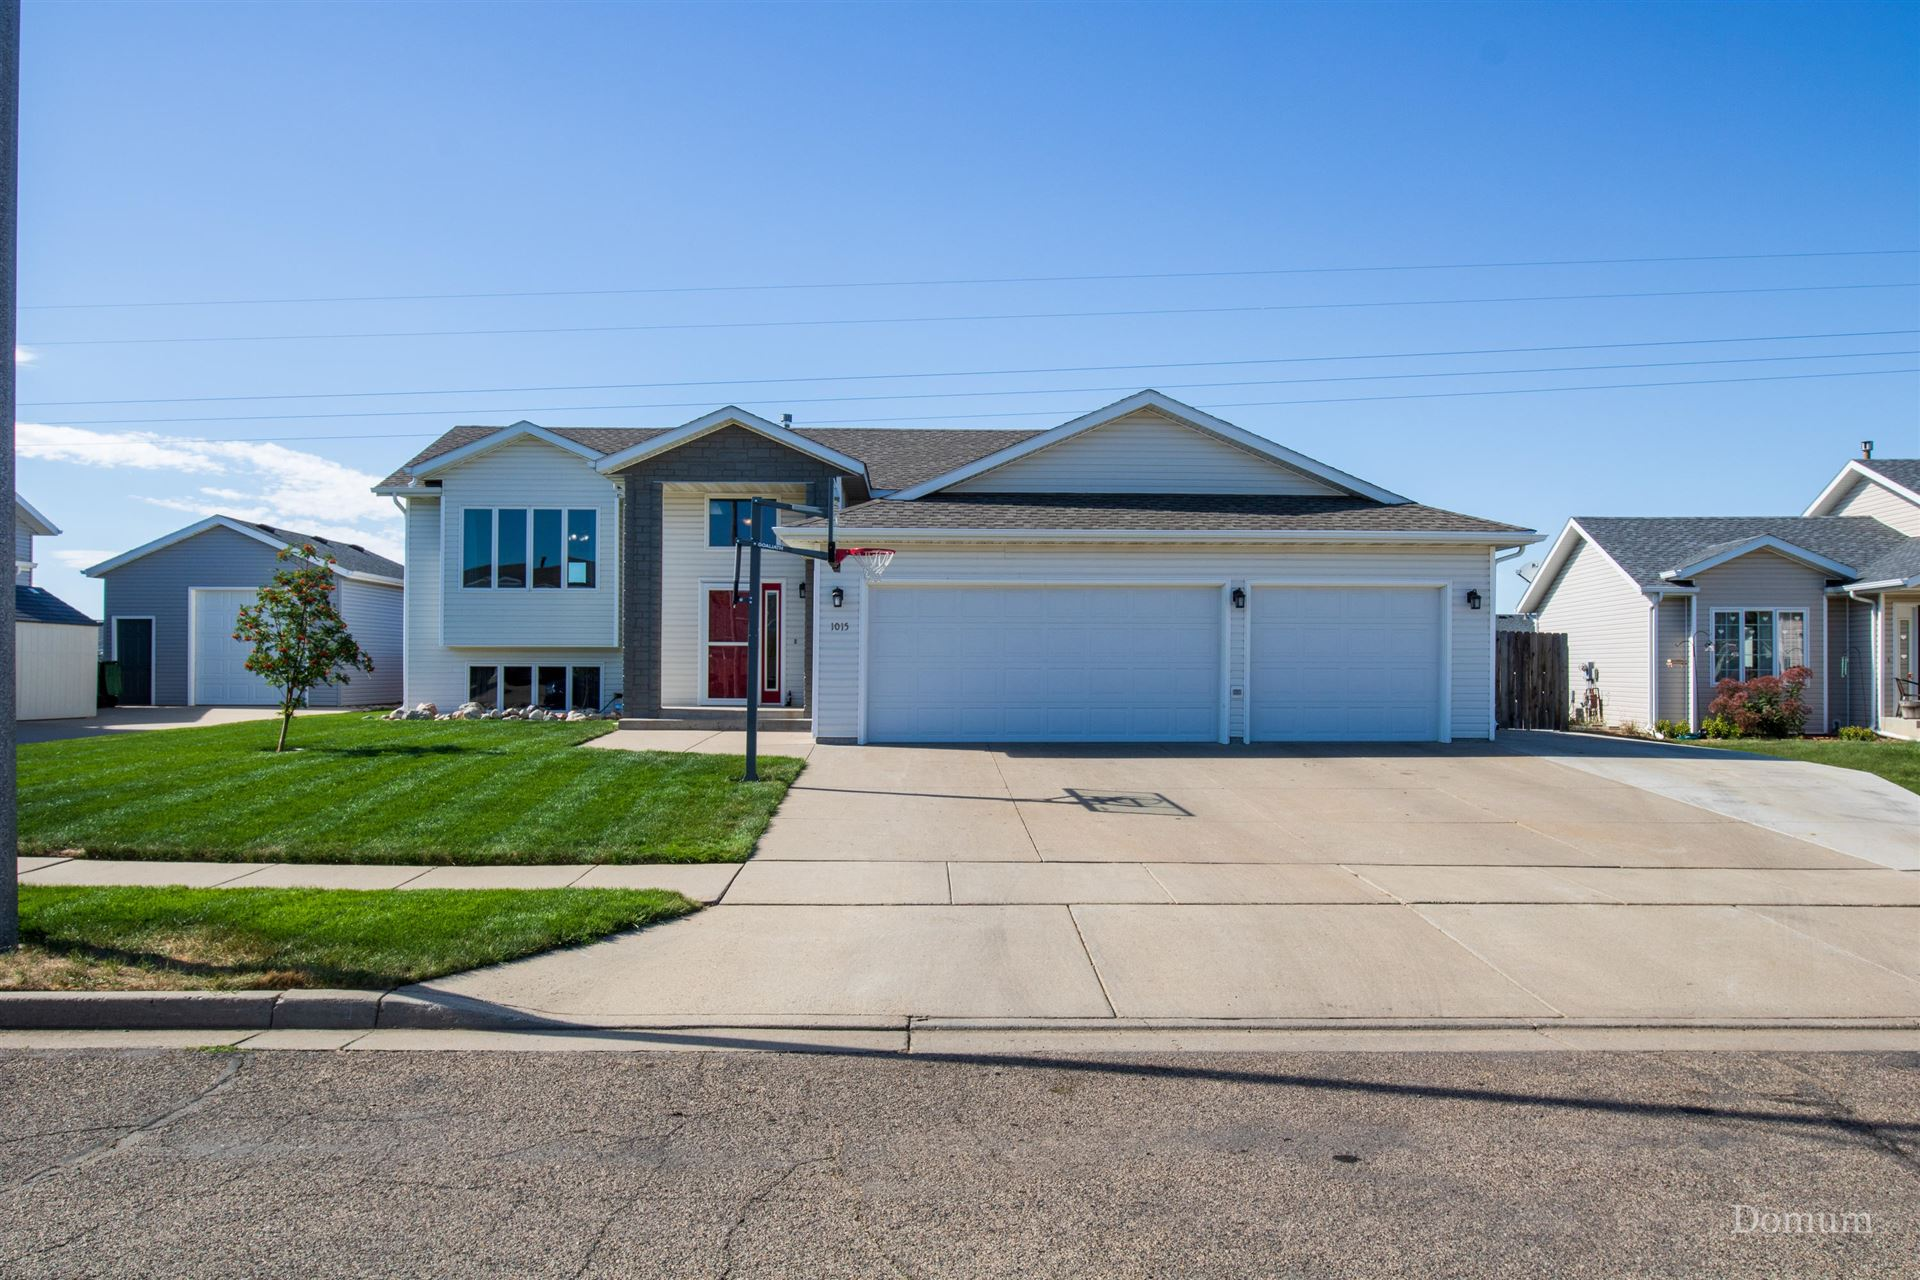 1015 Plainview Drive SE, Mandan, ND 58554 - #: 408346